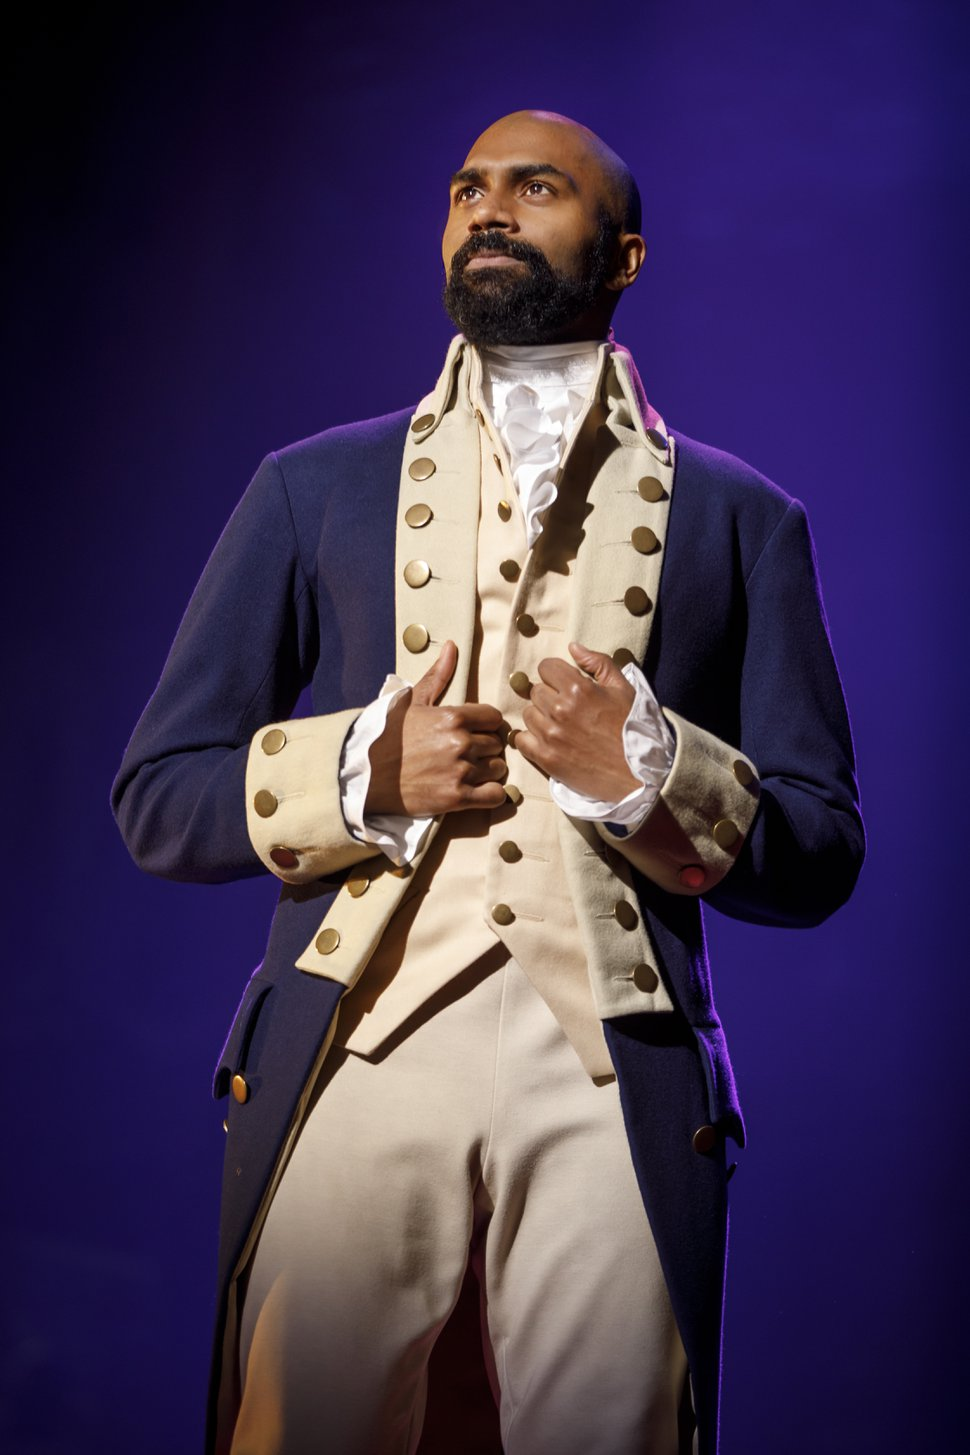 (Courtesy photograph by Joan Marcus) Nik Walker as Aaron Burr on the Philip tour of the musical